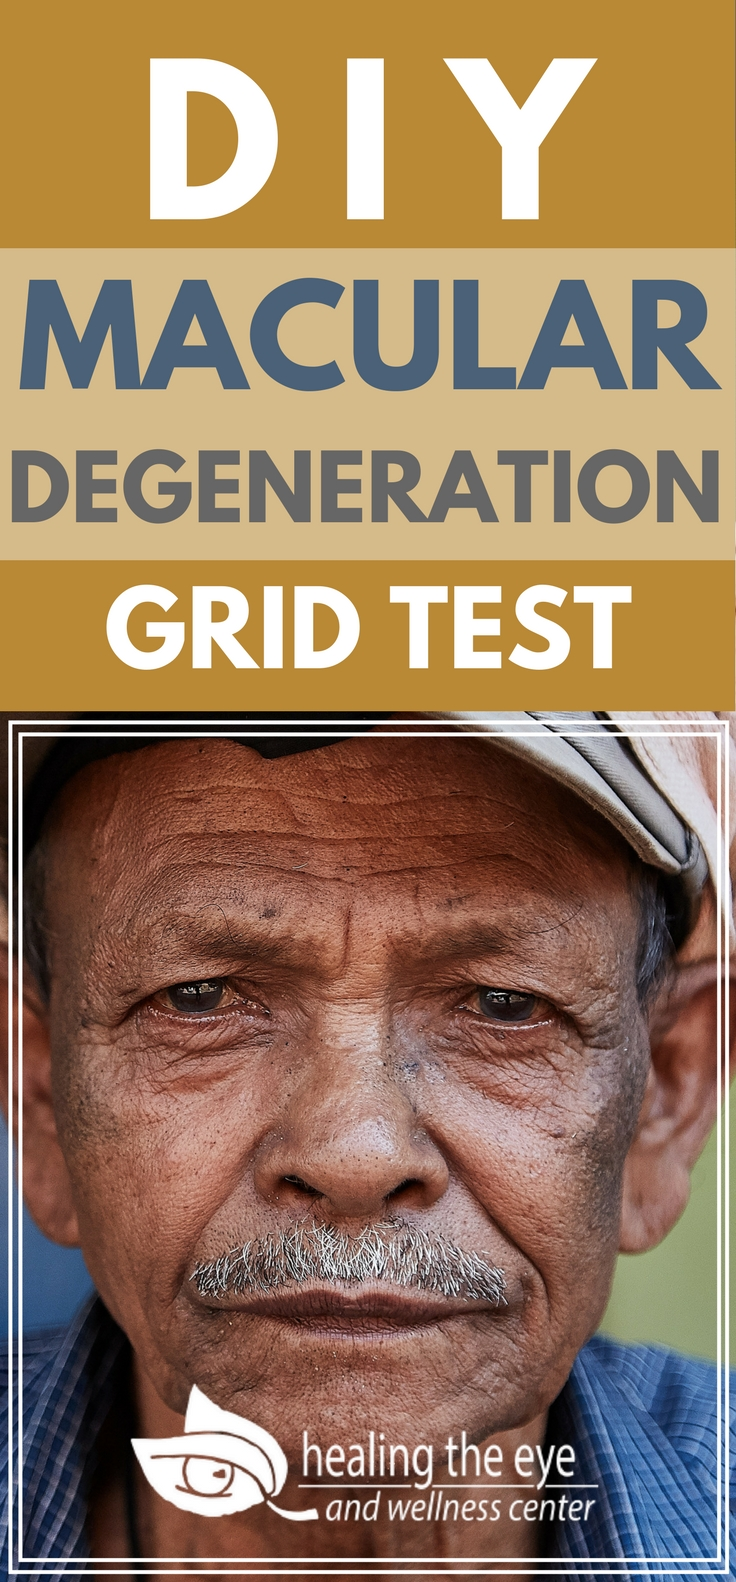 DIY Macular Degeneration Grid Test